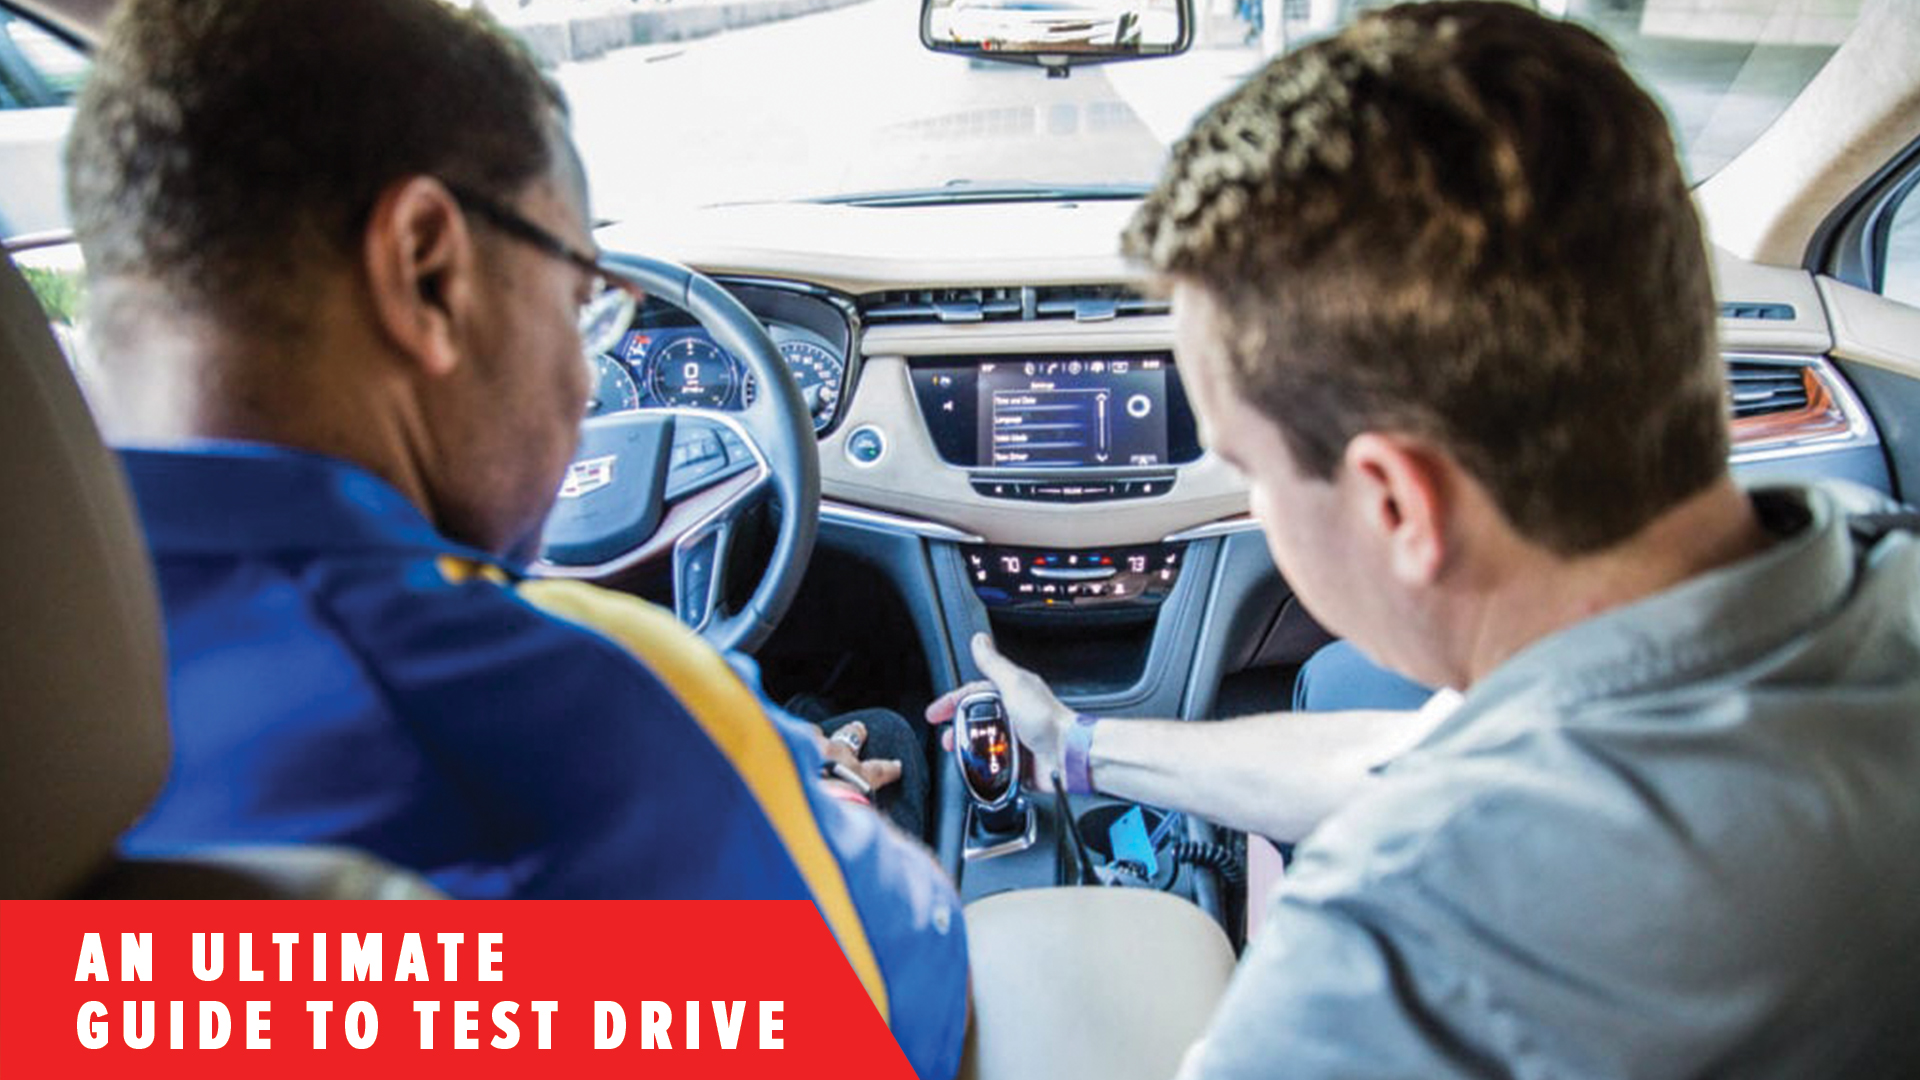 How to Test Drive A New Car: An Ultimate Guide to Test Drive